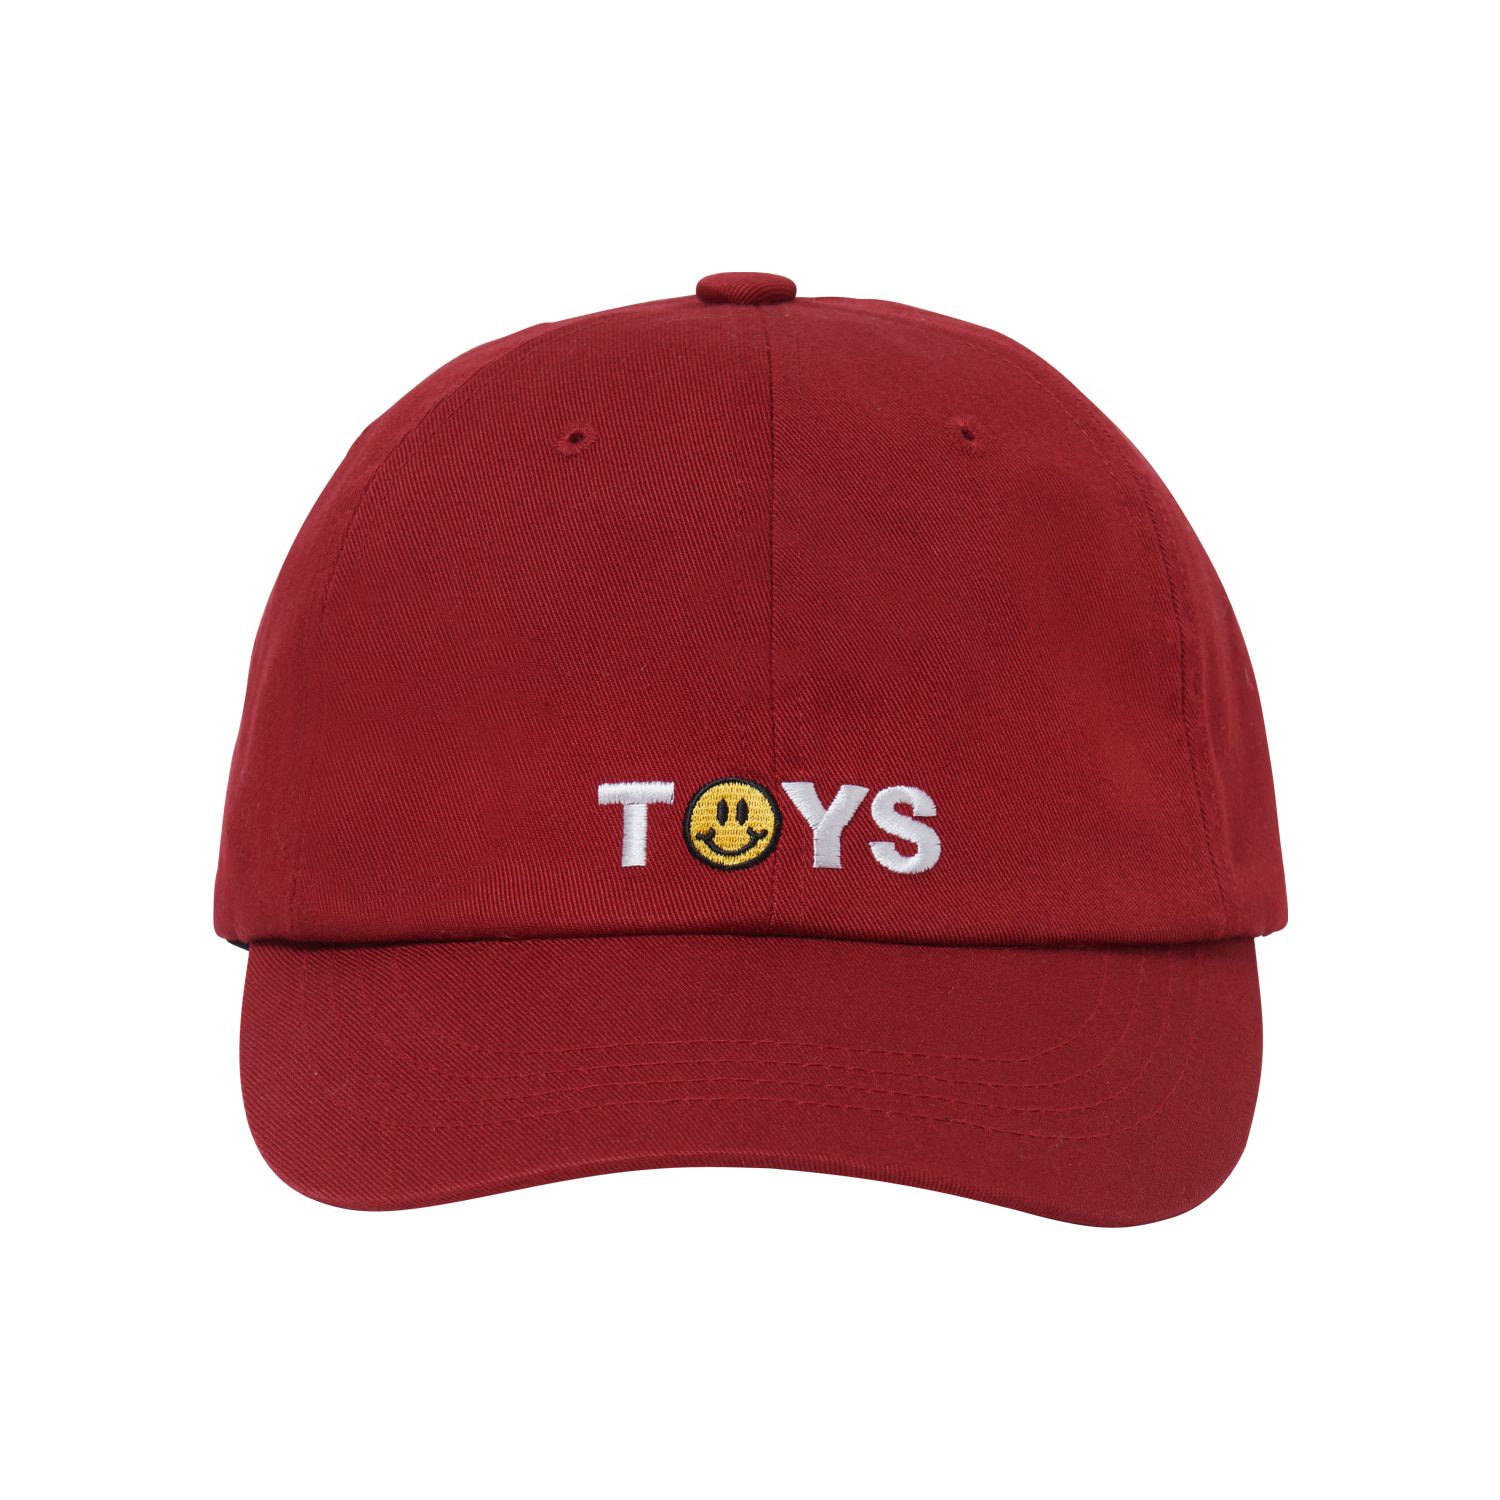 [75% OFF]TOYS BALL CAP(RED)